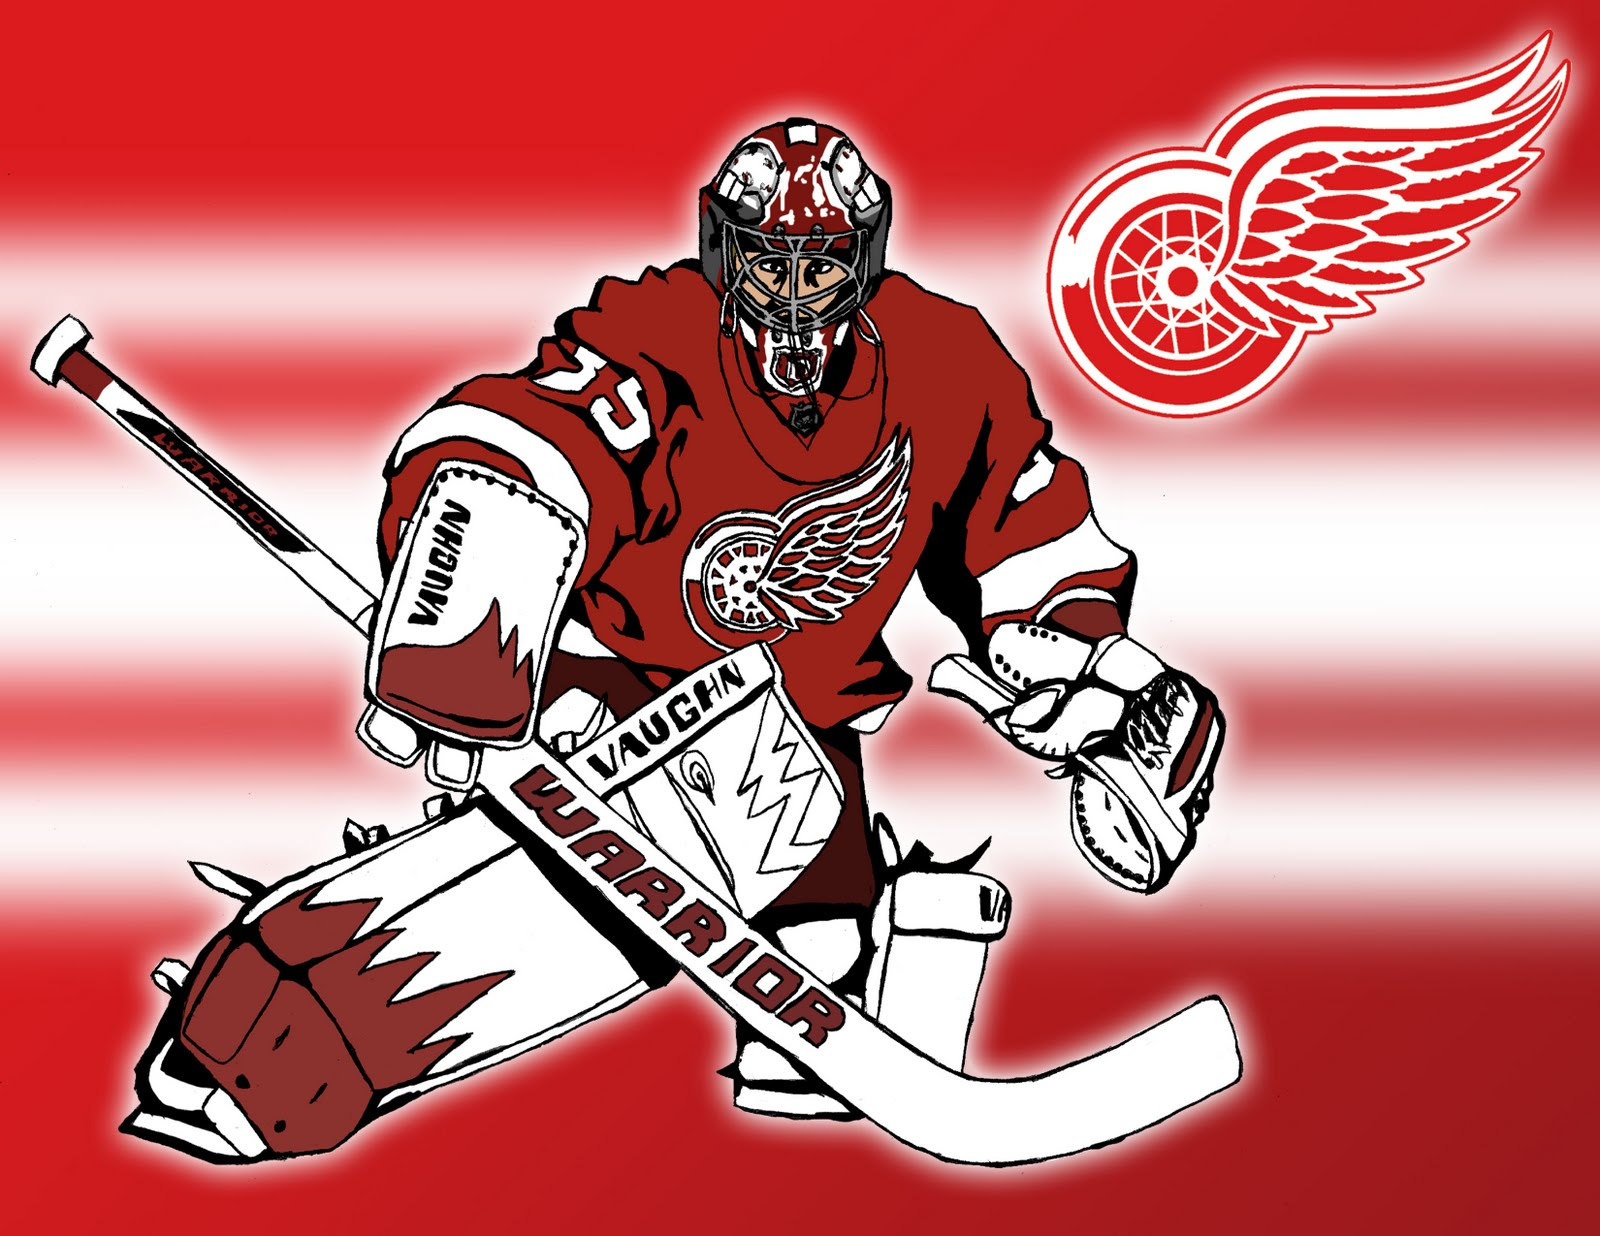 Jimmy Howard Wallpaper Jimmy howard 1600x1236